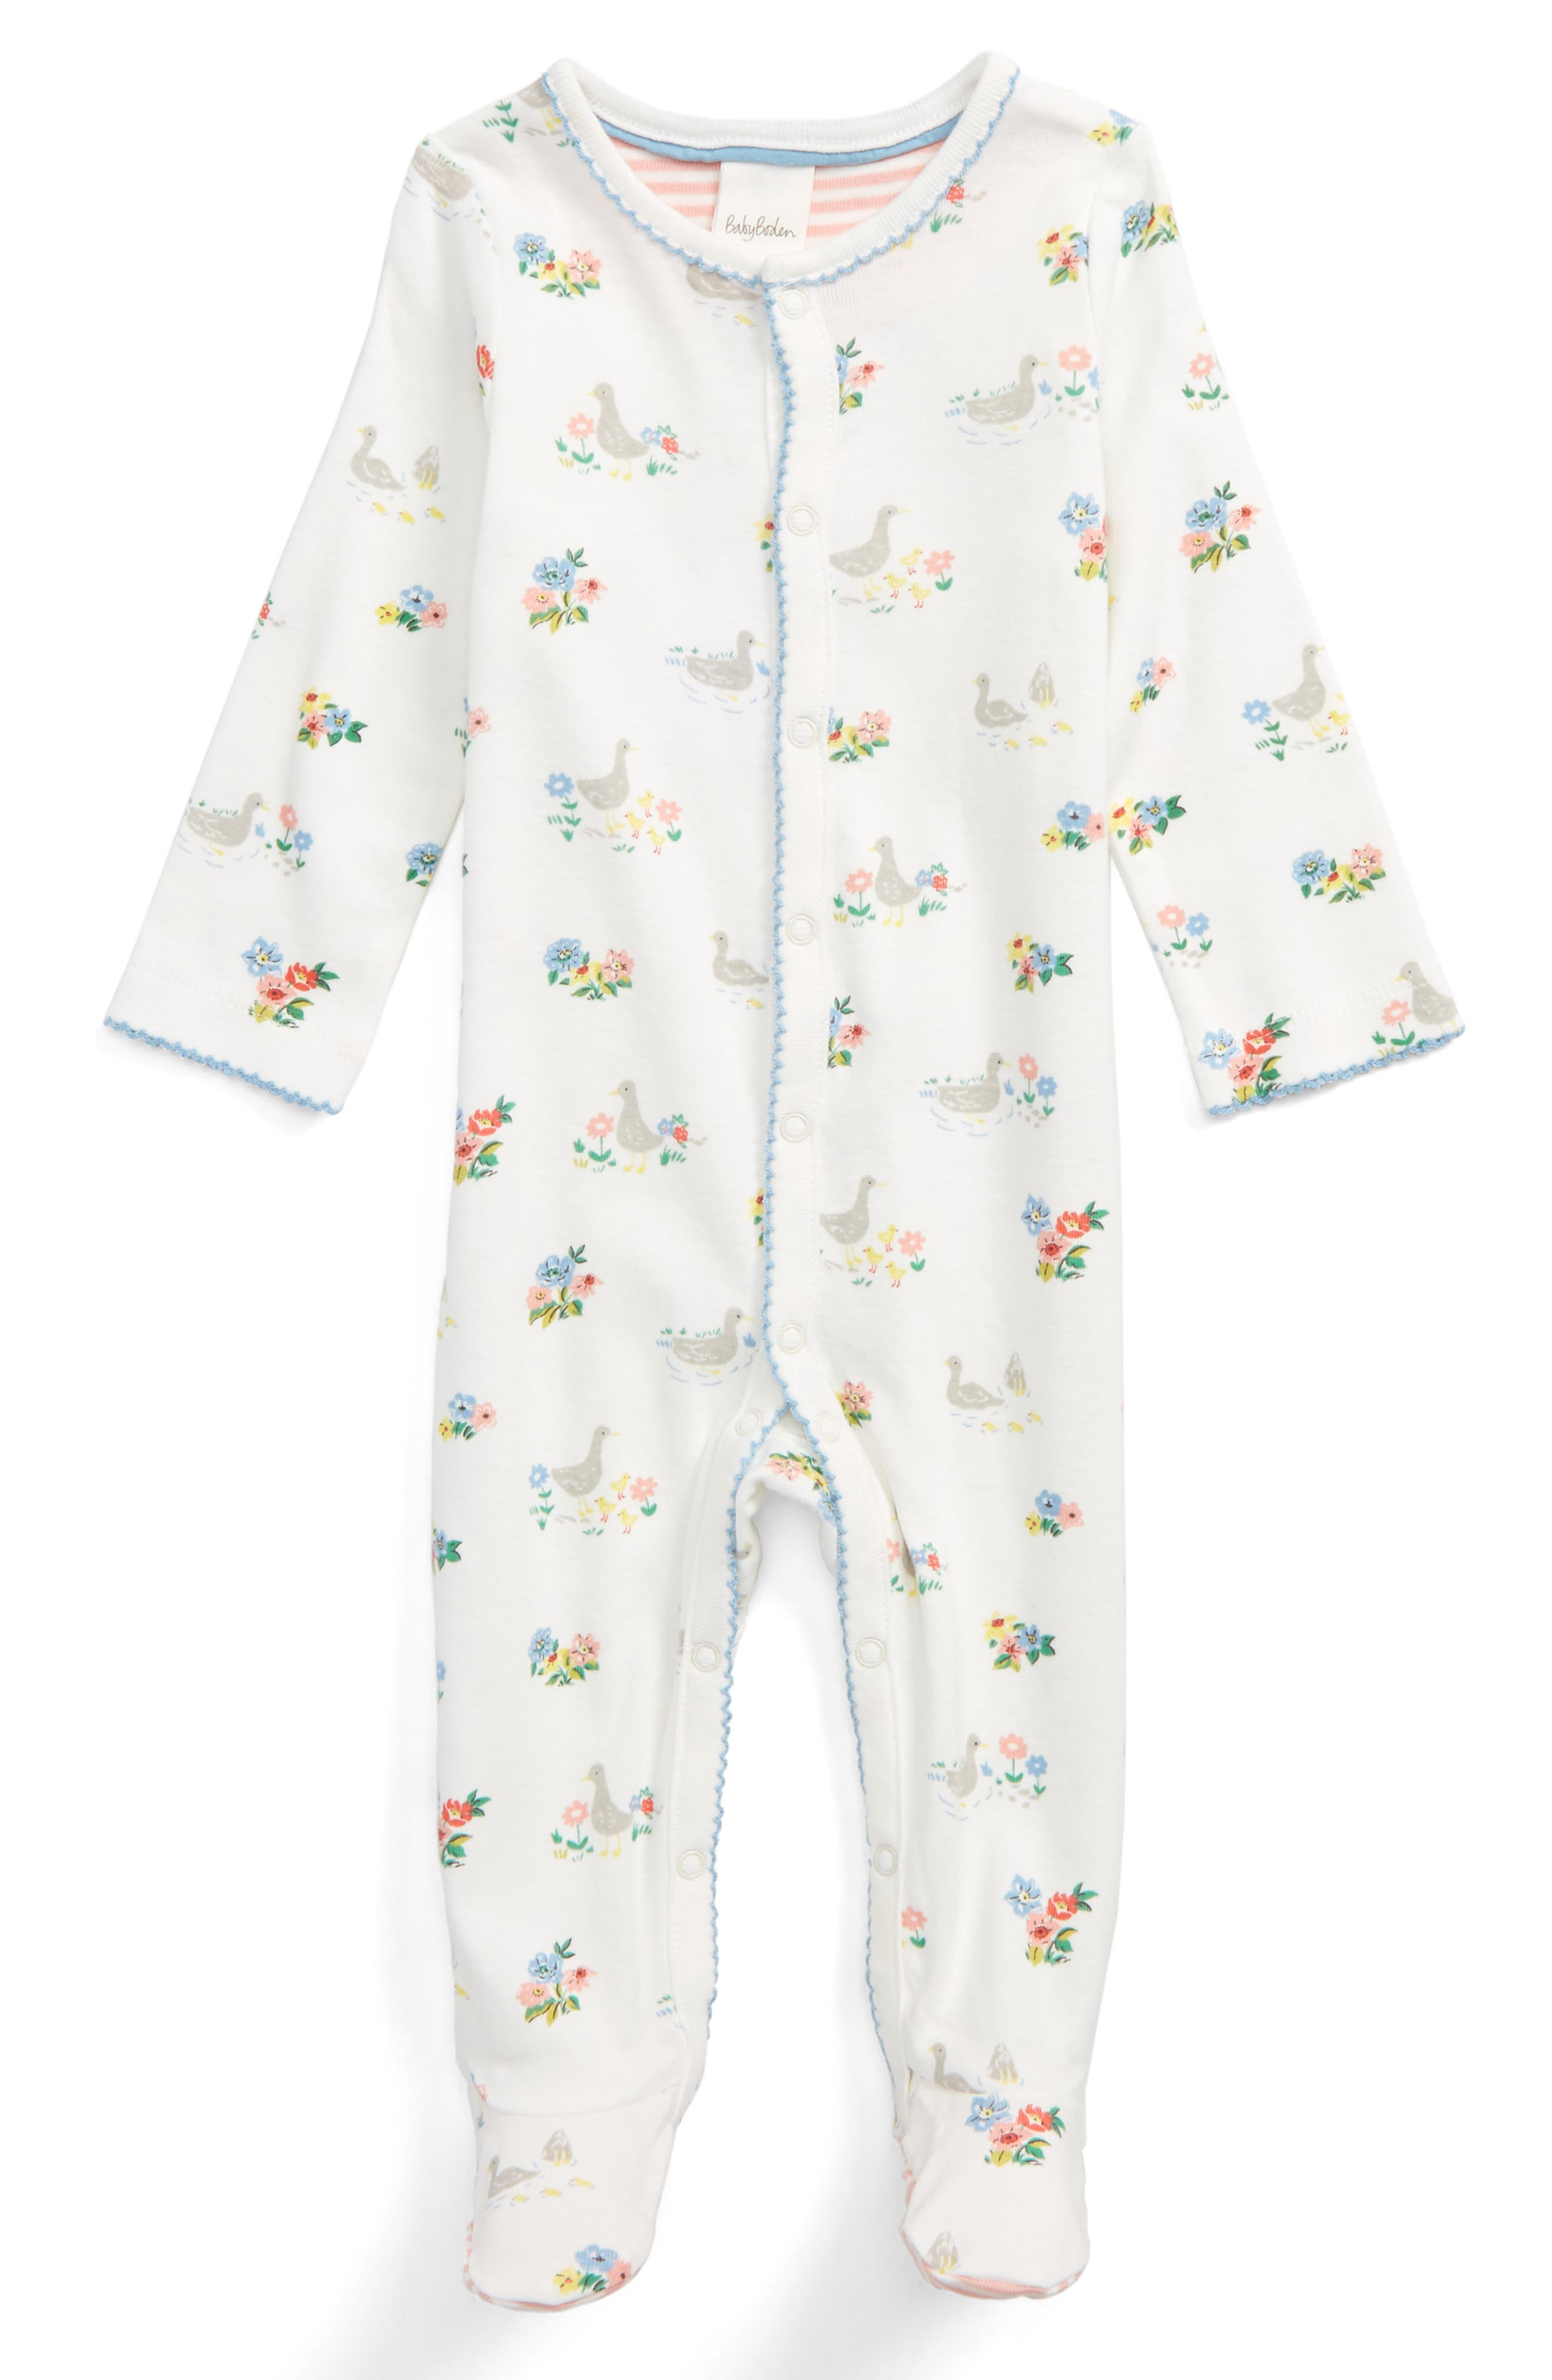 Main Image - Mini Boden Pretty Supersoft One-Piece Pajamas (Baby Girls)